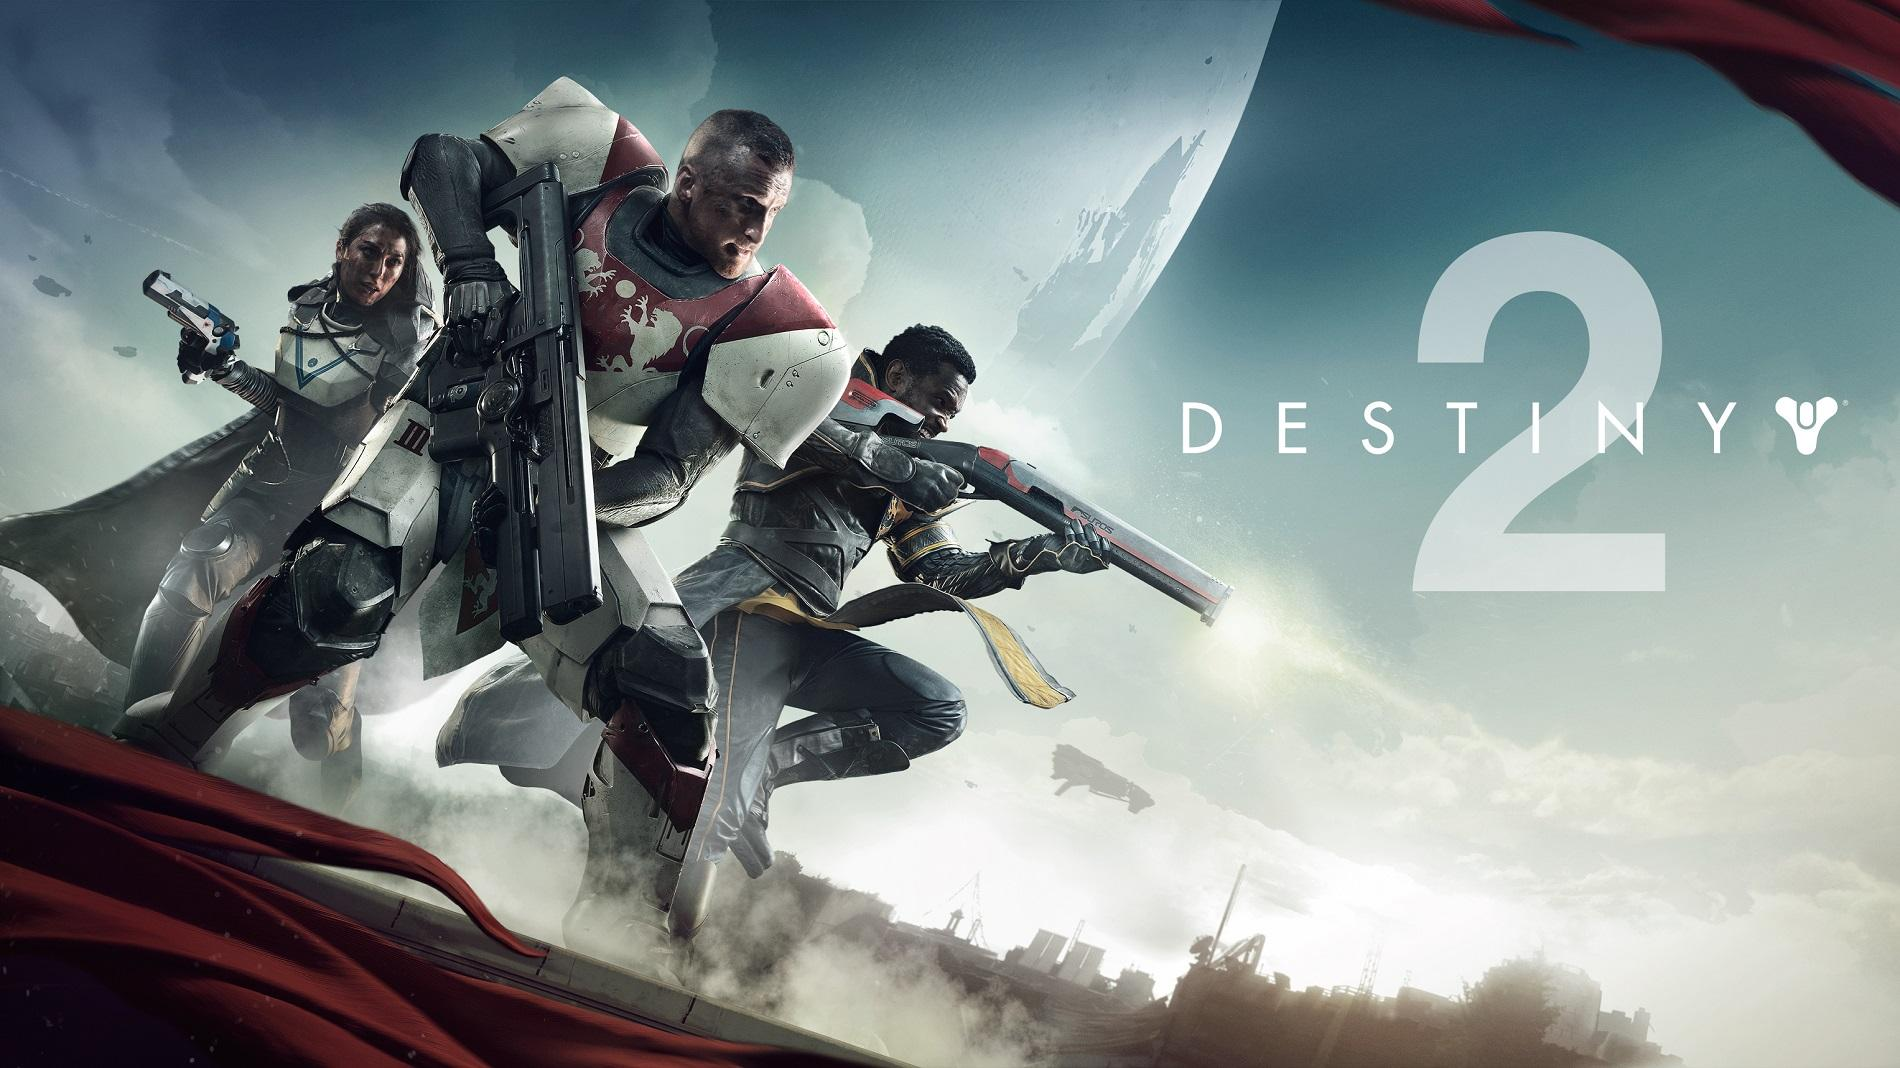 A review of the game Destiny 2: the biggest shooter gets even better